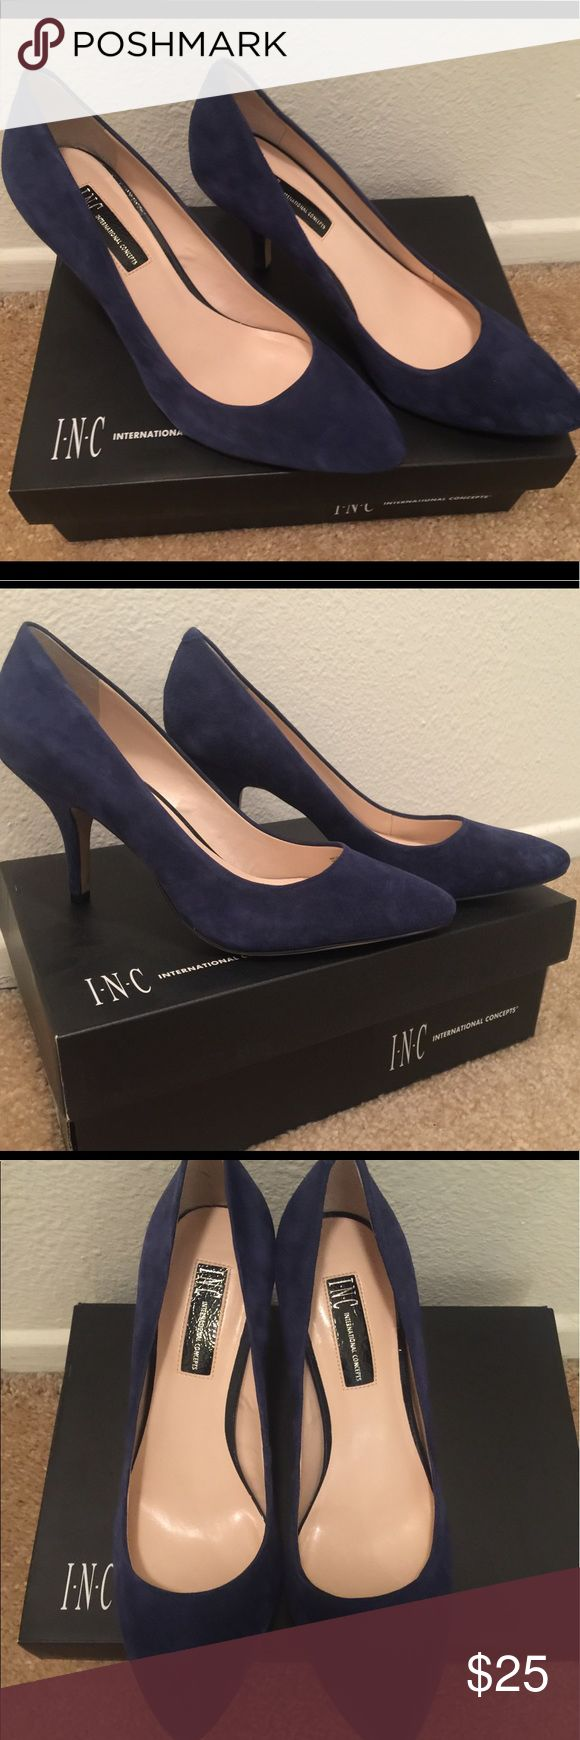 ONLY WORN ONCE! - blue suede pumps 3 inch heel, blue suede. Only worn once! In perfect condition! INC International Concepts Shoes Heels